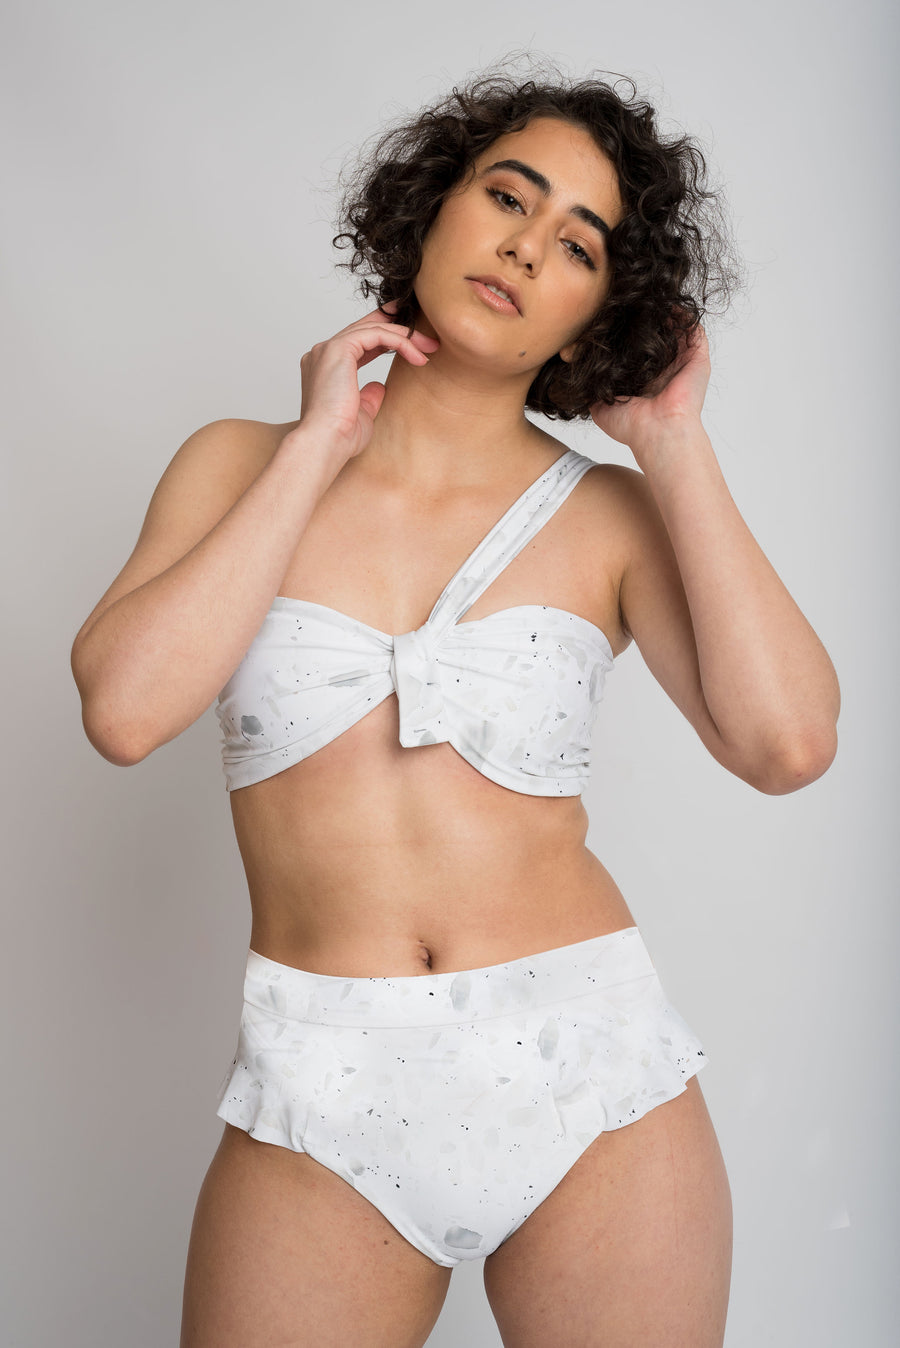 Ethical and sustainable swimwear for women xxs to plus size, recycled ECONYL cute frill high waist bikini bottom ethically made in Australia.